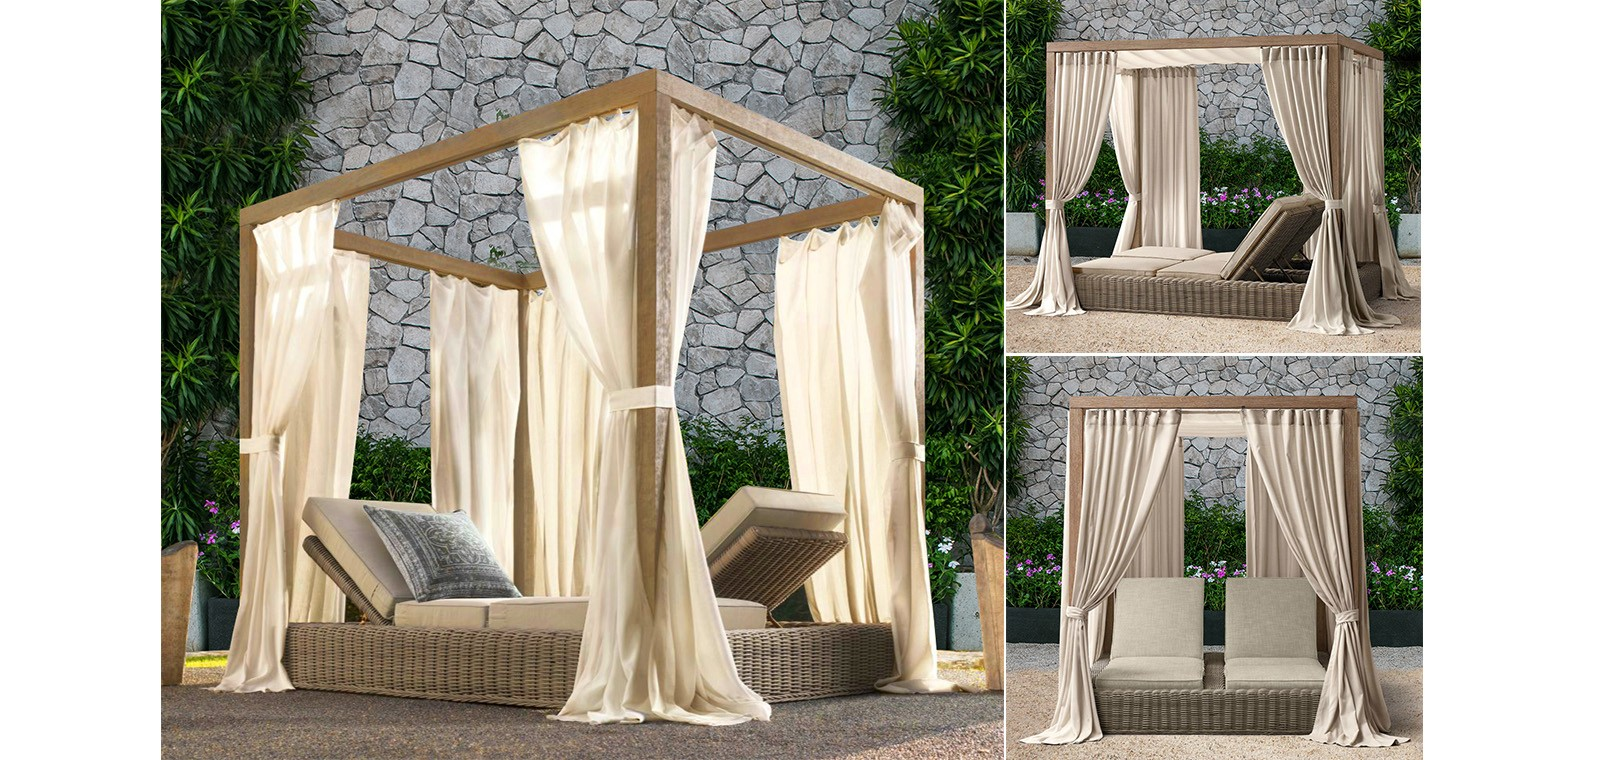 aland collection outdoor furniture daybed sunbrella 4